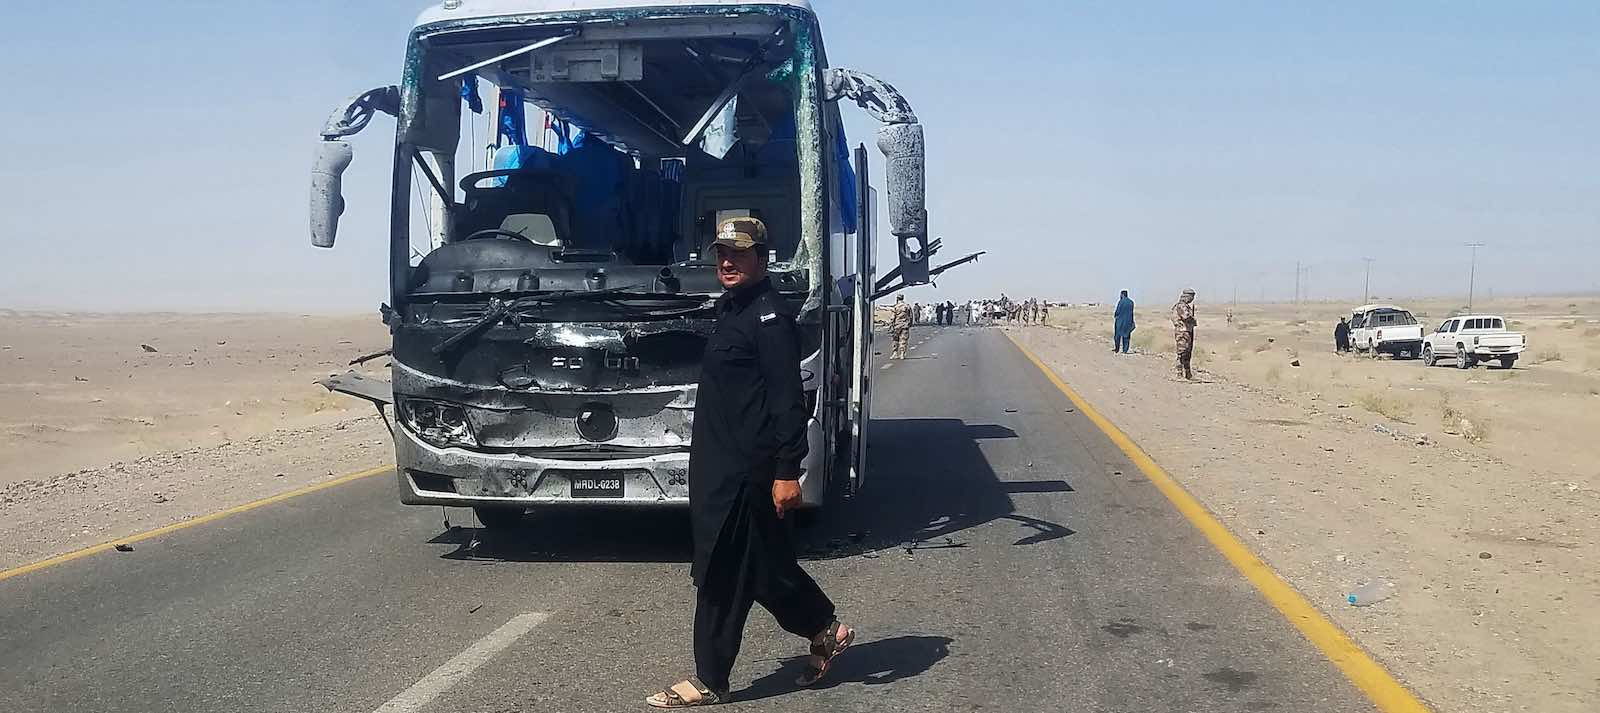 The aftermath of a 11 August suicide attack on a bus carrying Chinese engineers in Dalbandin region, Balochistan province in Pakistan (Photo: Ali Raza/Getty)